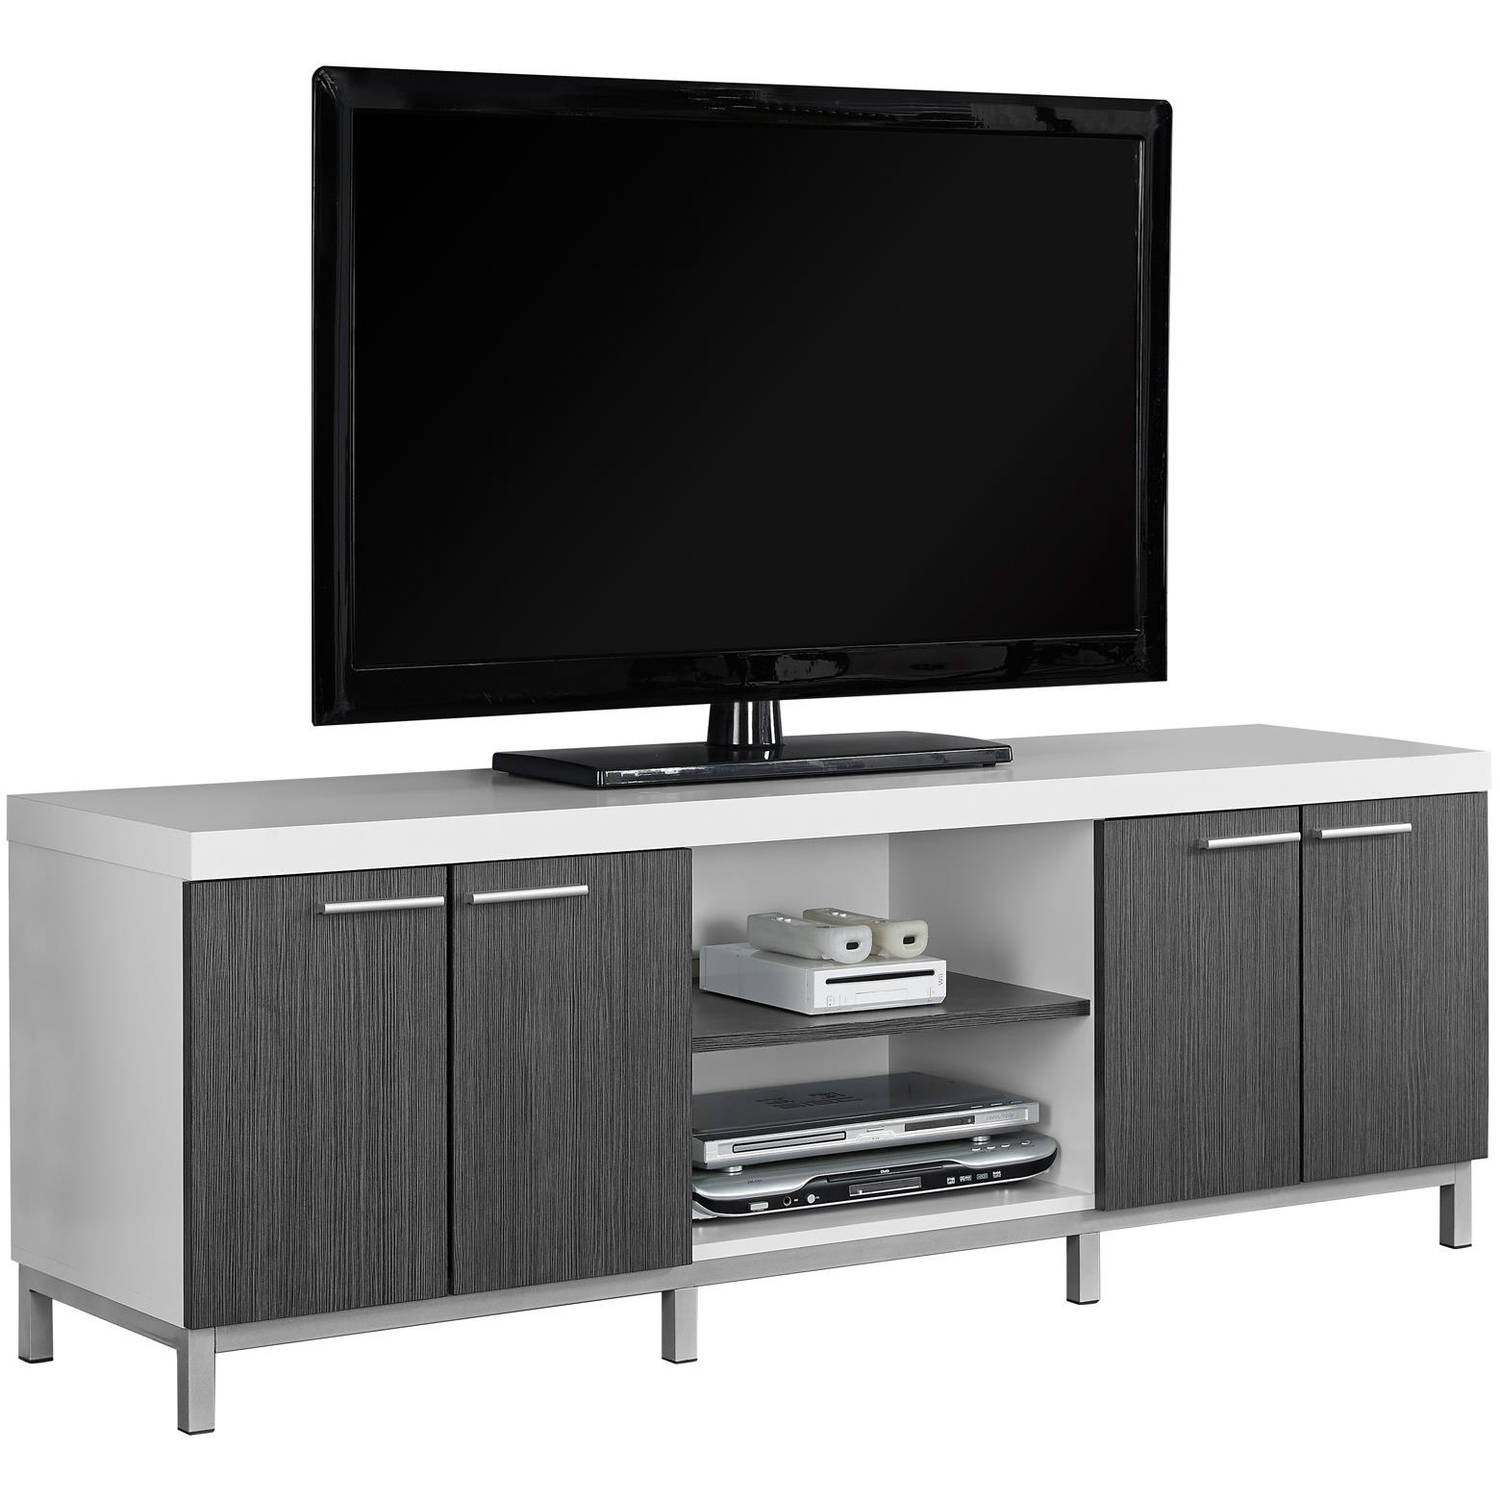 MONARCH   TV STAND   WHITE / GREY   FOR TVu0027S UP TO ...